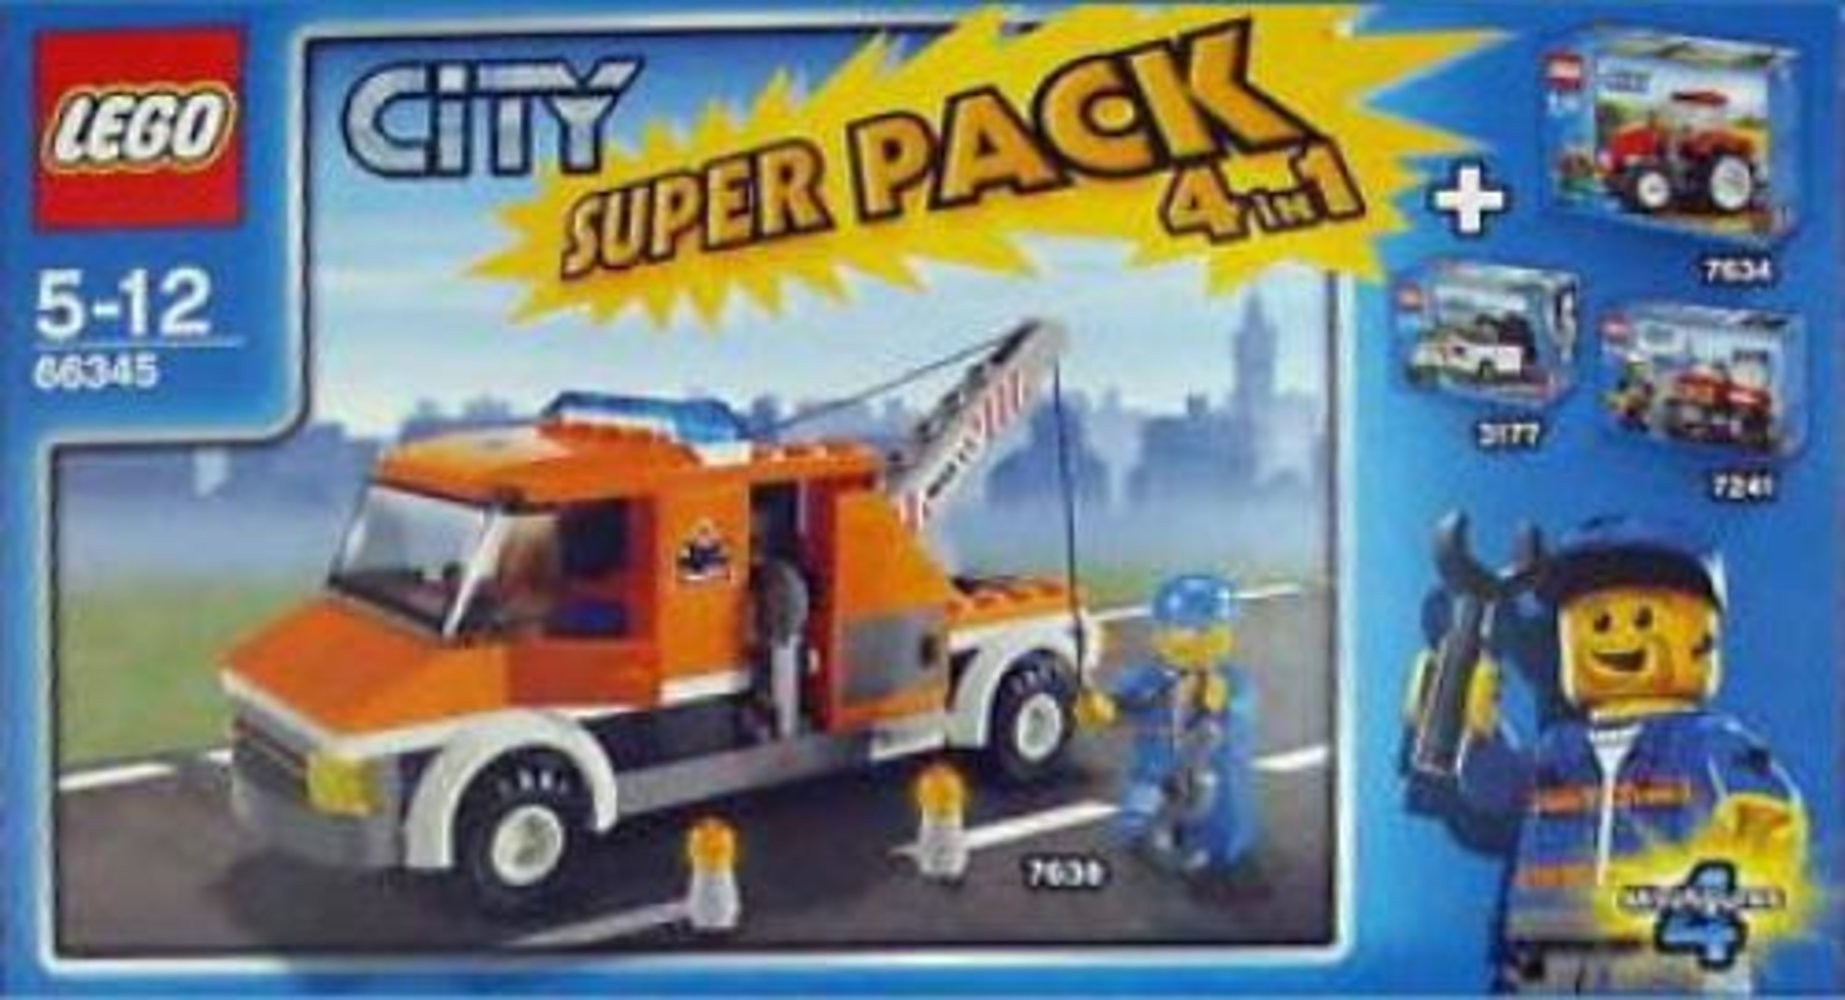 City Super Pack 4 in 1 (3177 7241 7634 7638)